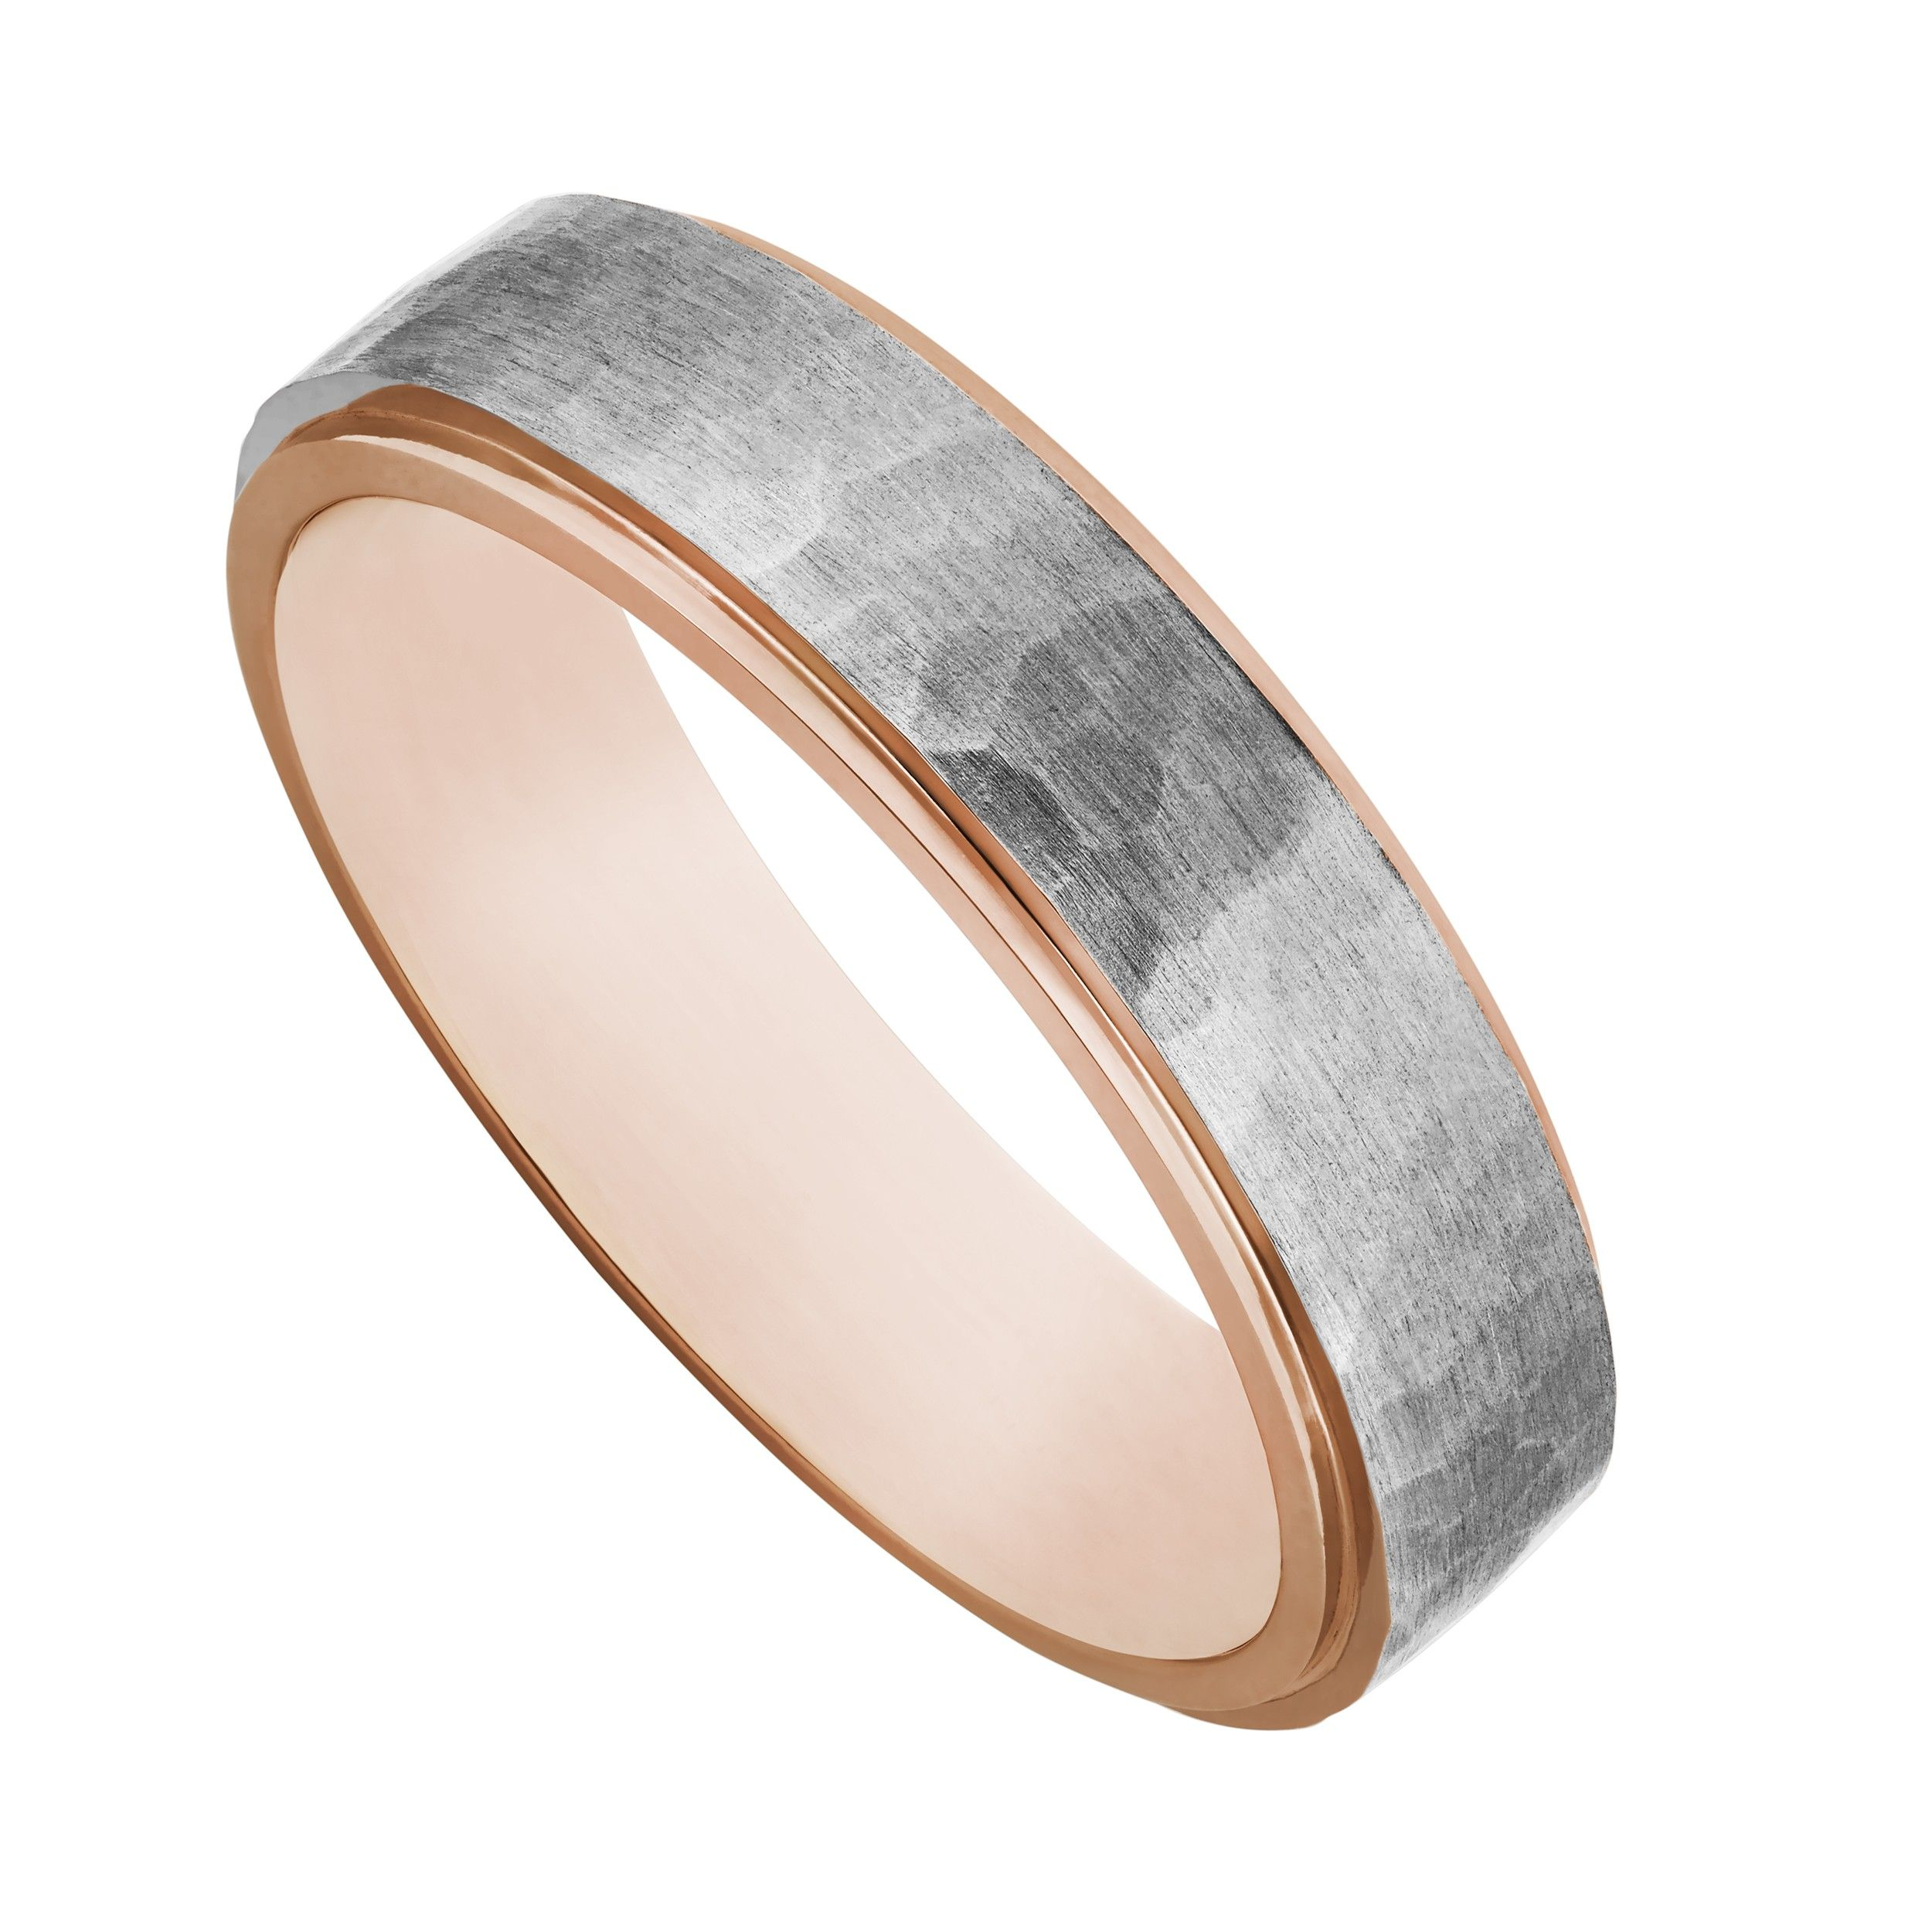 patterned mens wedding band white gold - google search | wedding